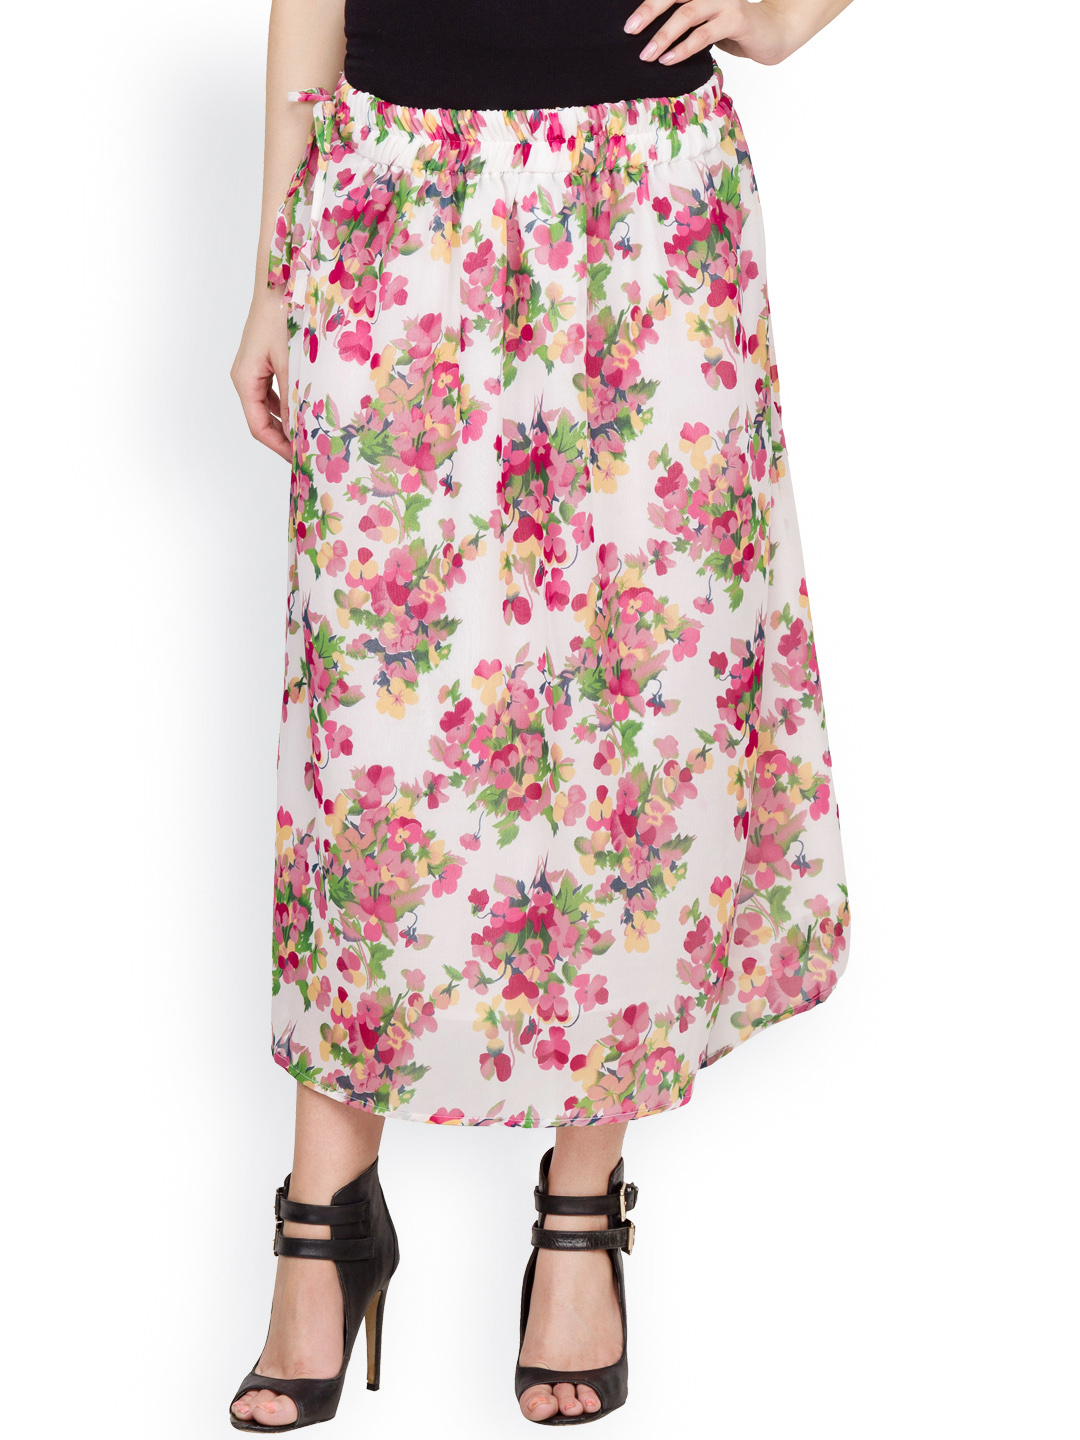 54d2f22518 ... Print Georgette Skirt with Elasticated Waist and cotton lining. triumph